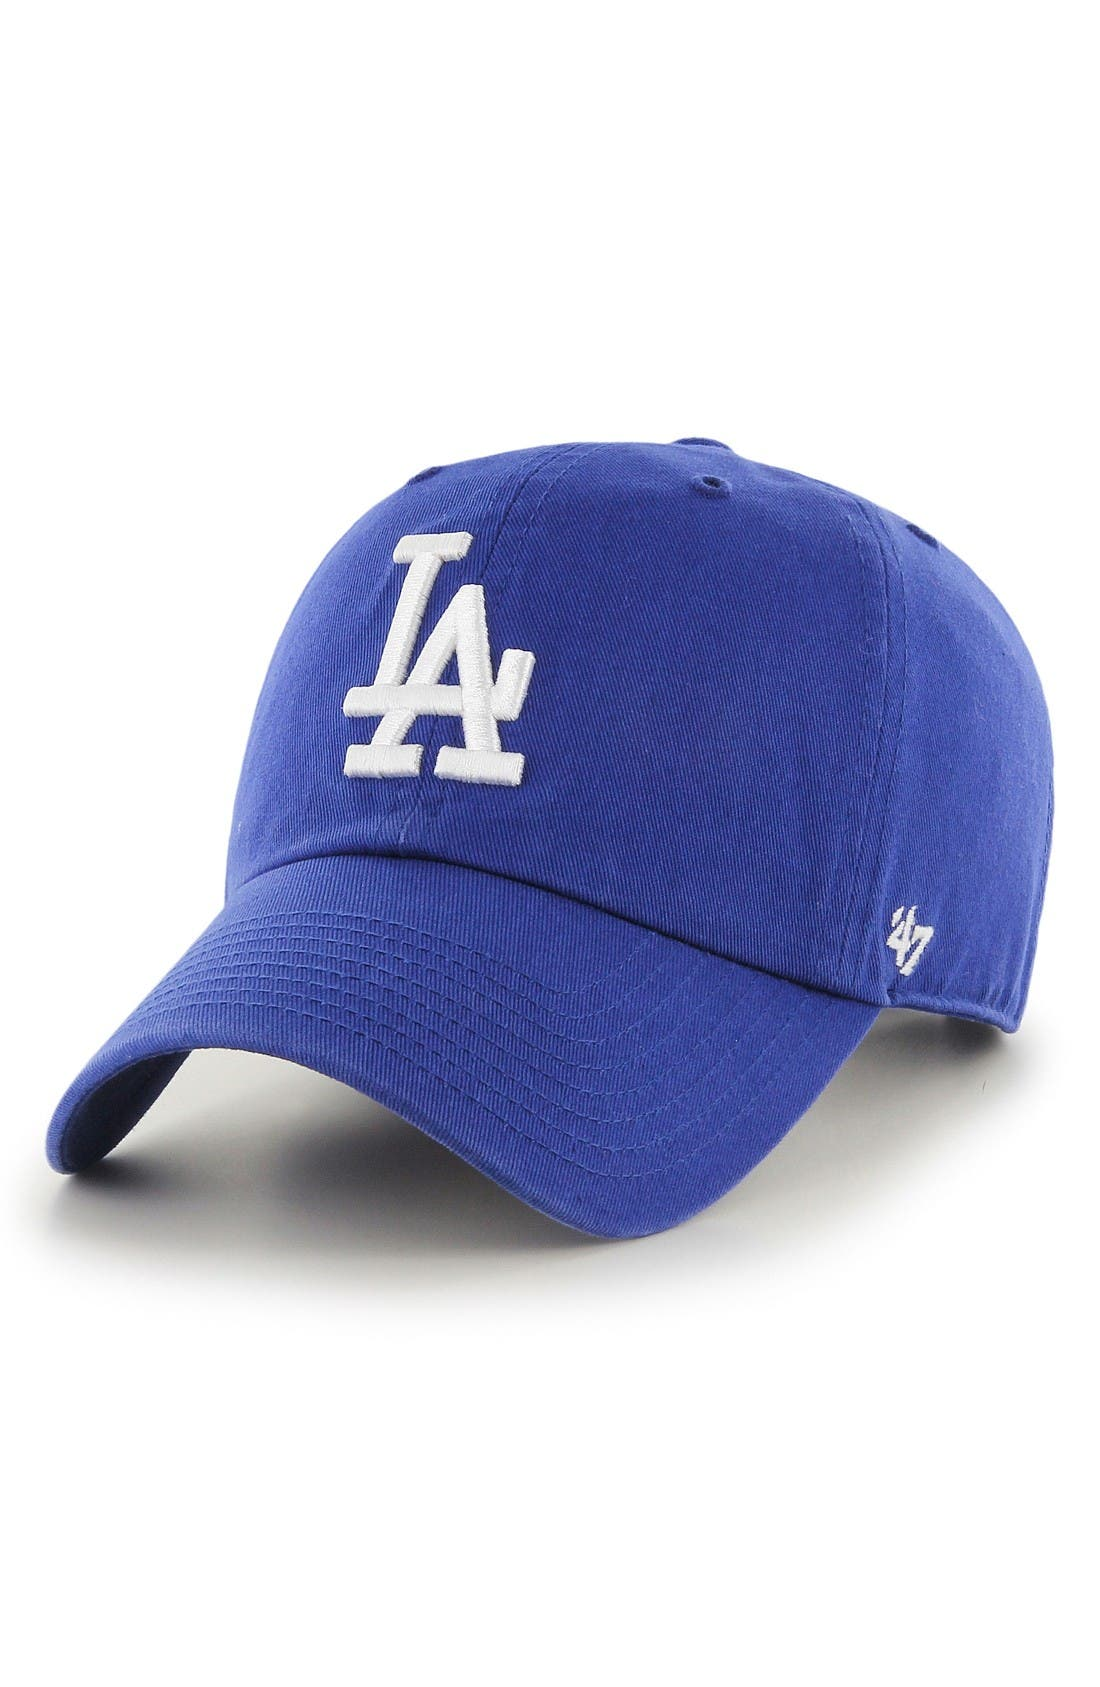 Main Image - '47 Clean Up LA Dodgers Baseball Cap